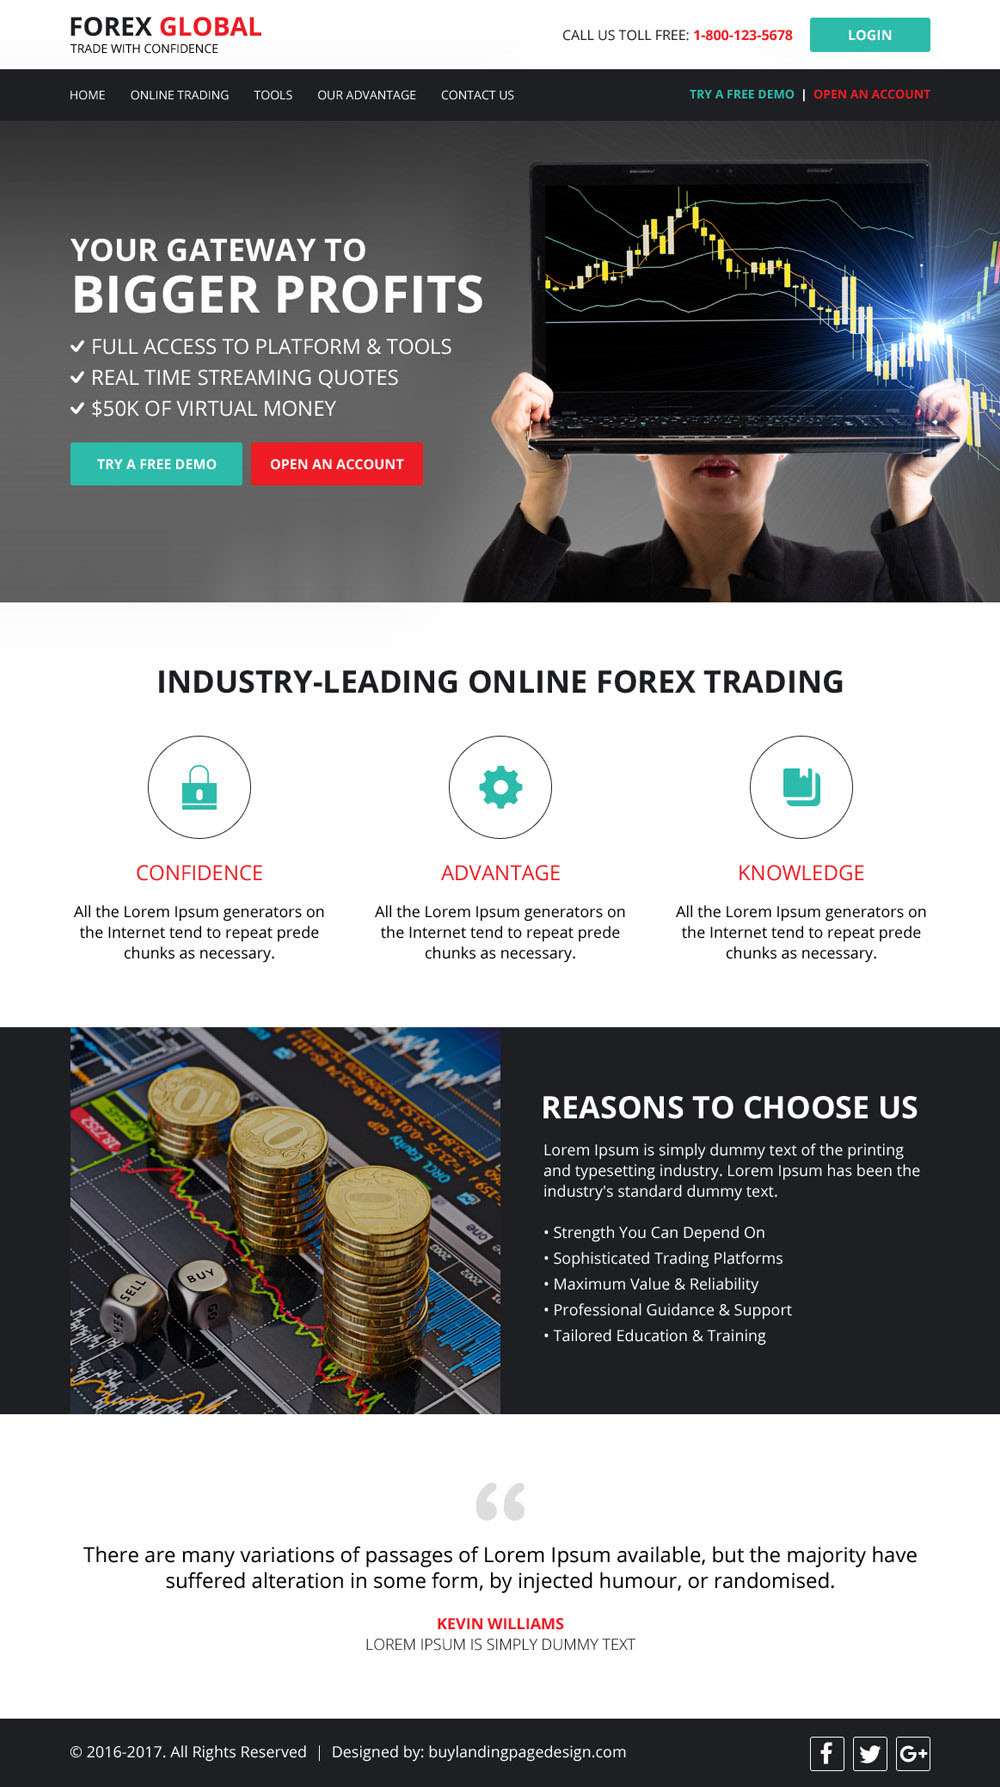 forex-trading-html-website-templates-to-create-your-forex-trading-website-001